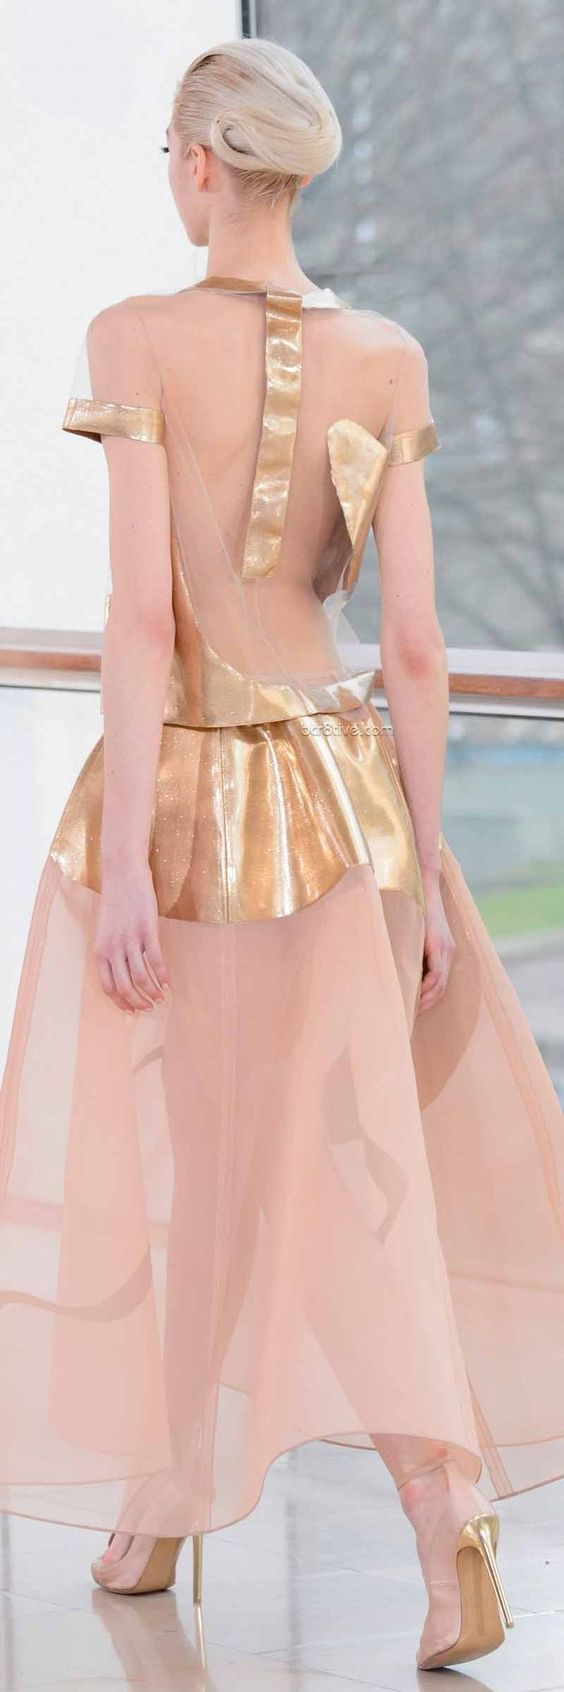 Stéphane Rolland Couture Spring 2015   House of Beccaria#